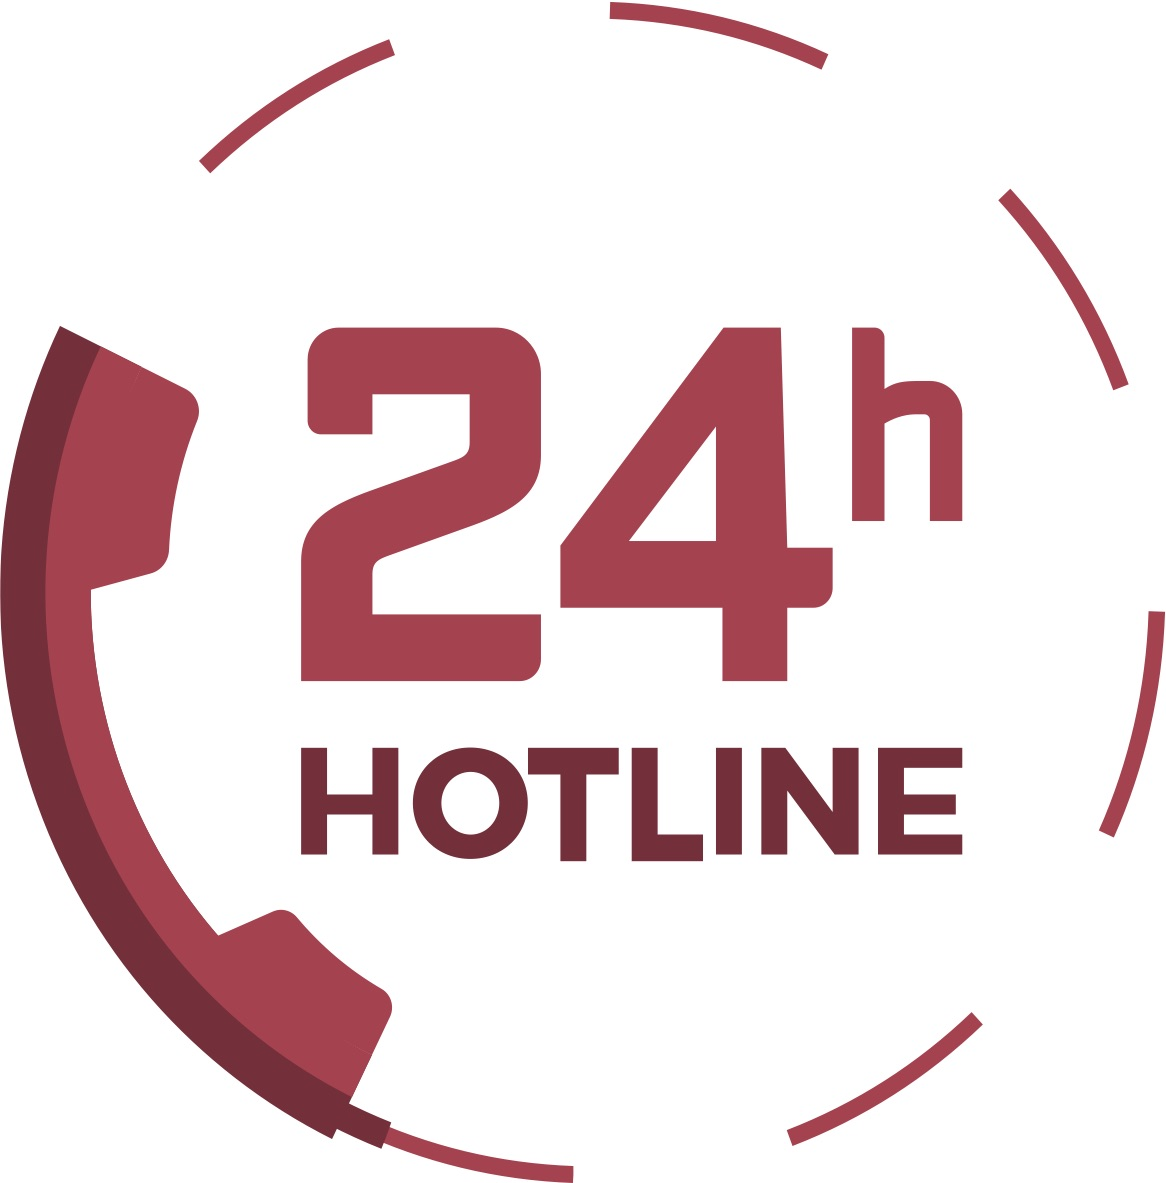 Call our dedicated after hours emergency hotline anytime, anyday. We can respond immediately on any roofing emergency from weather, fire or vandalism damage.